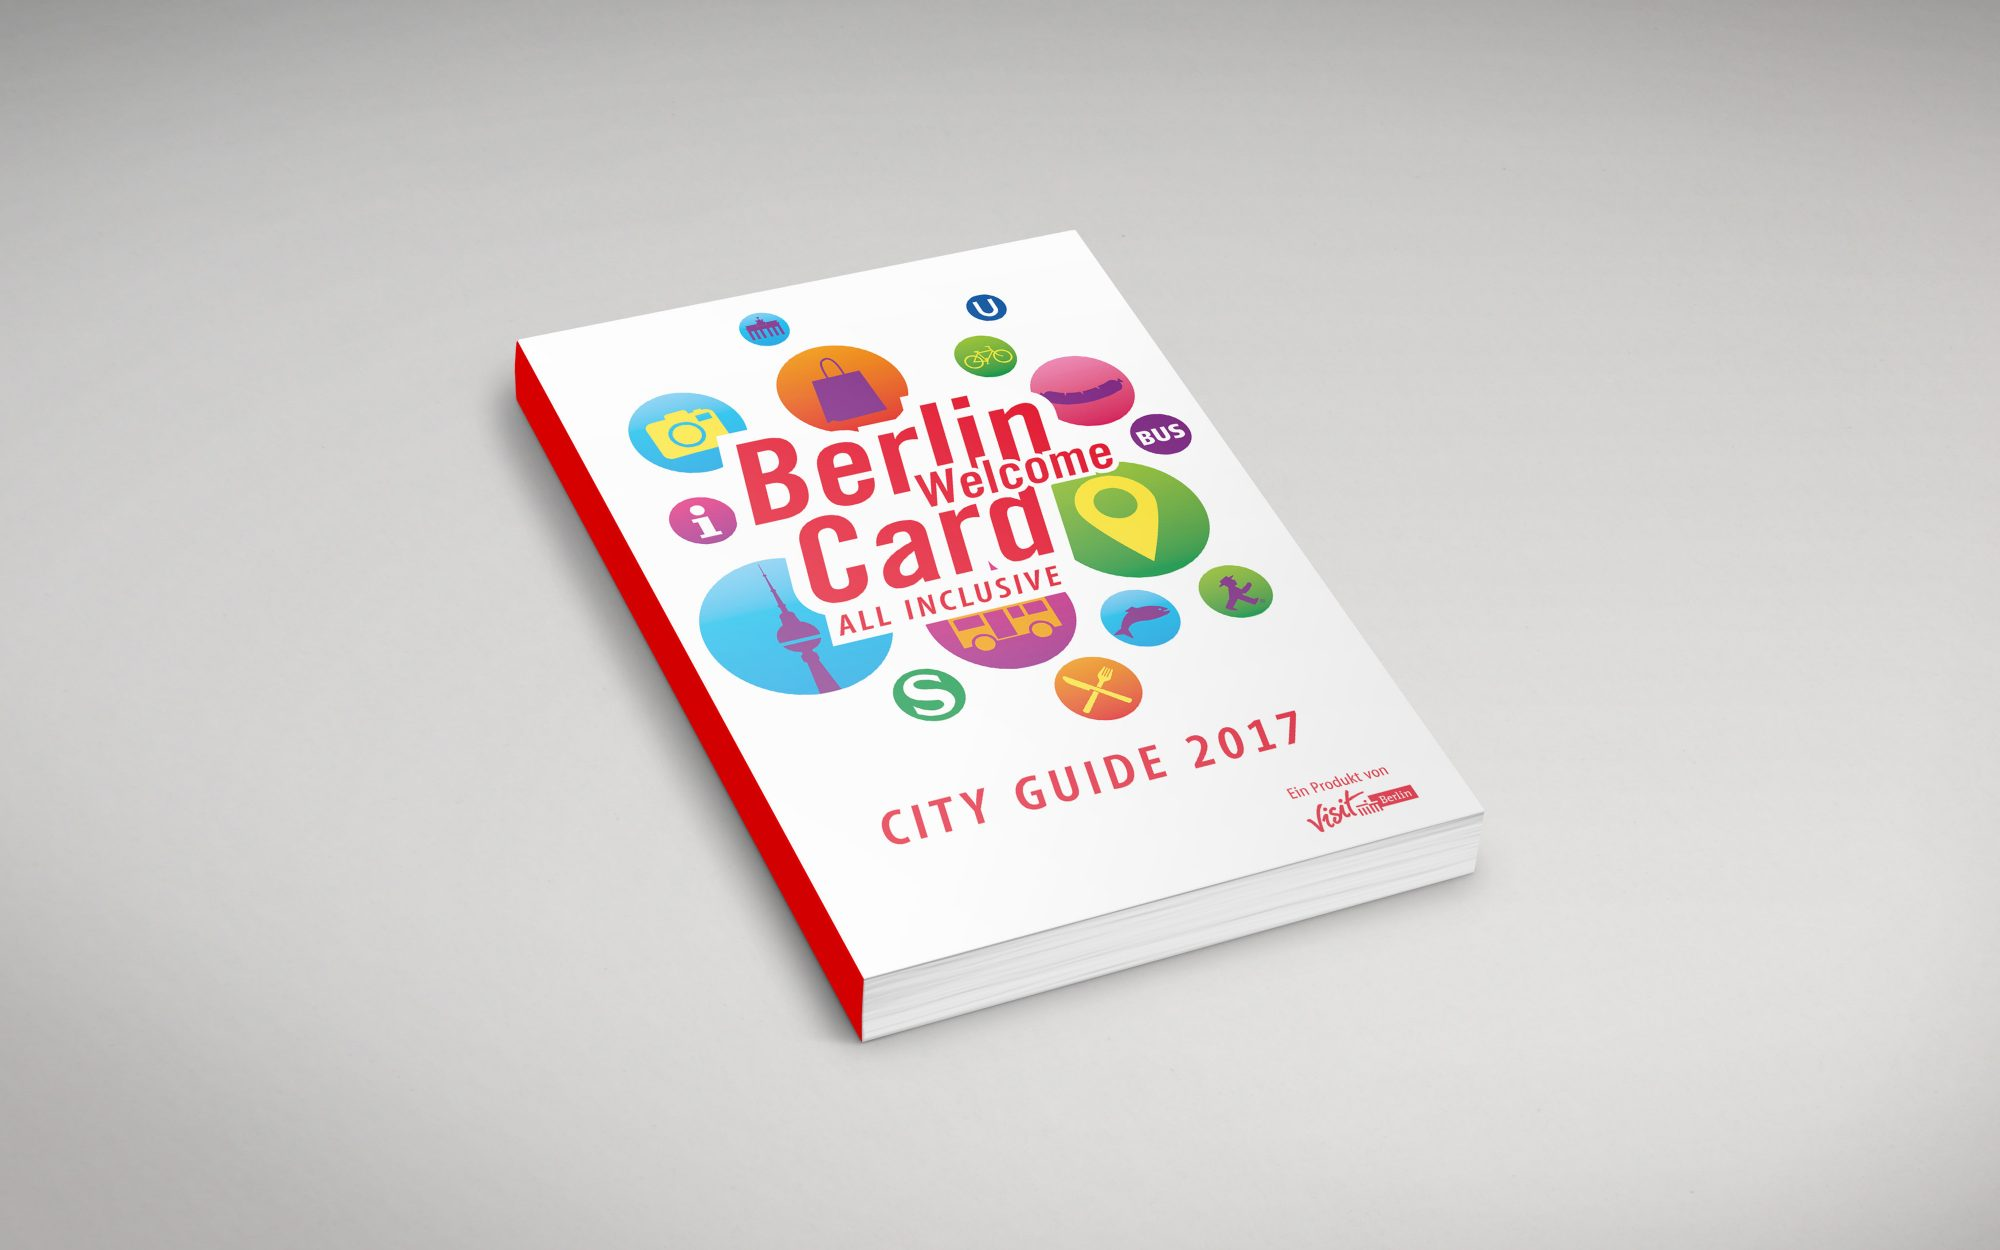 GRACO-Visit Berlin-BerlinCard-City Guide